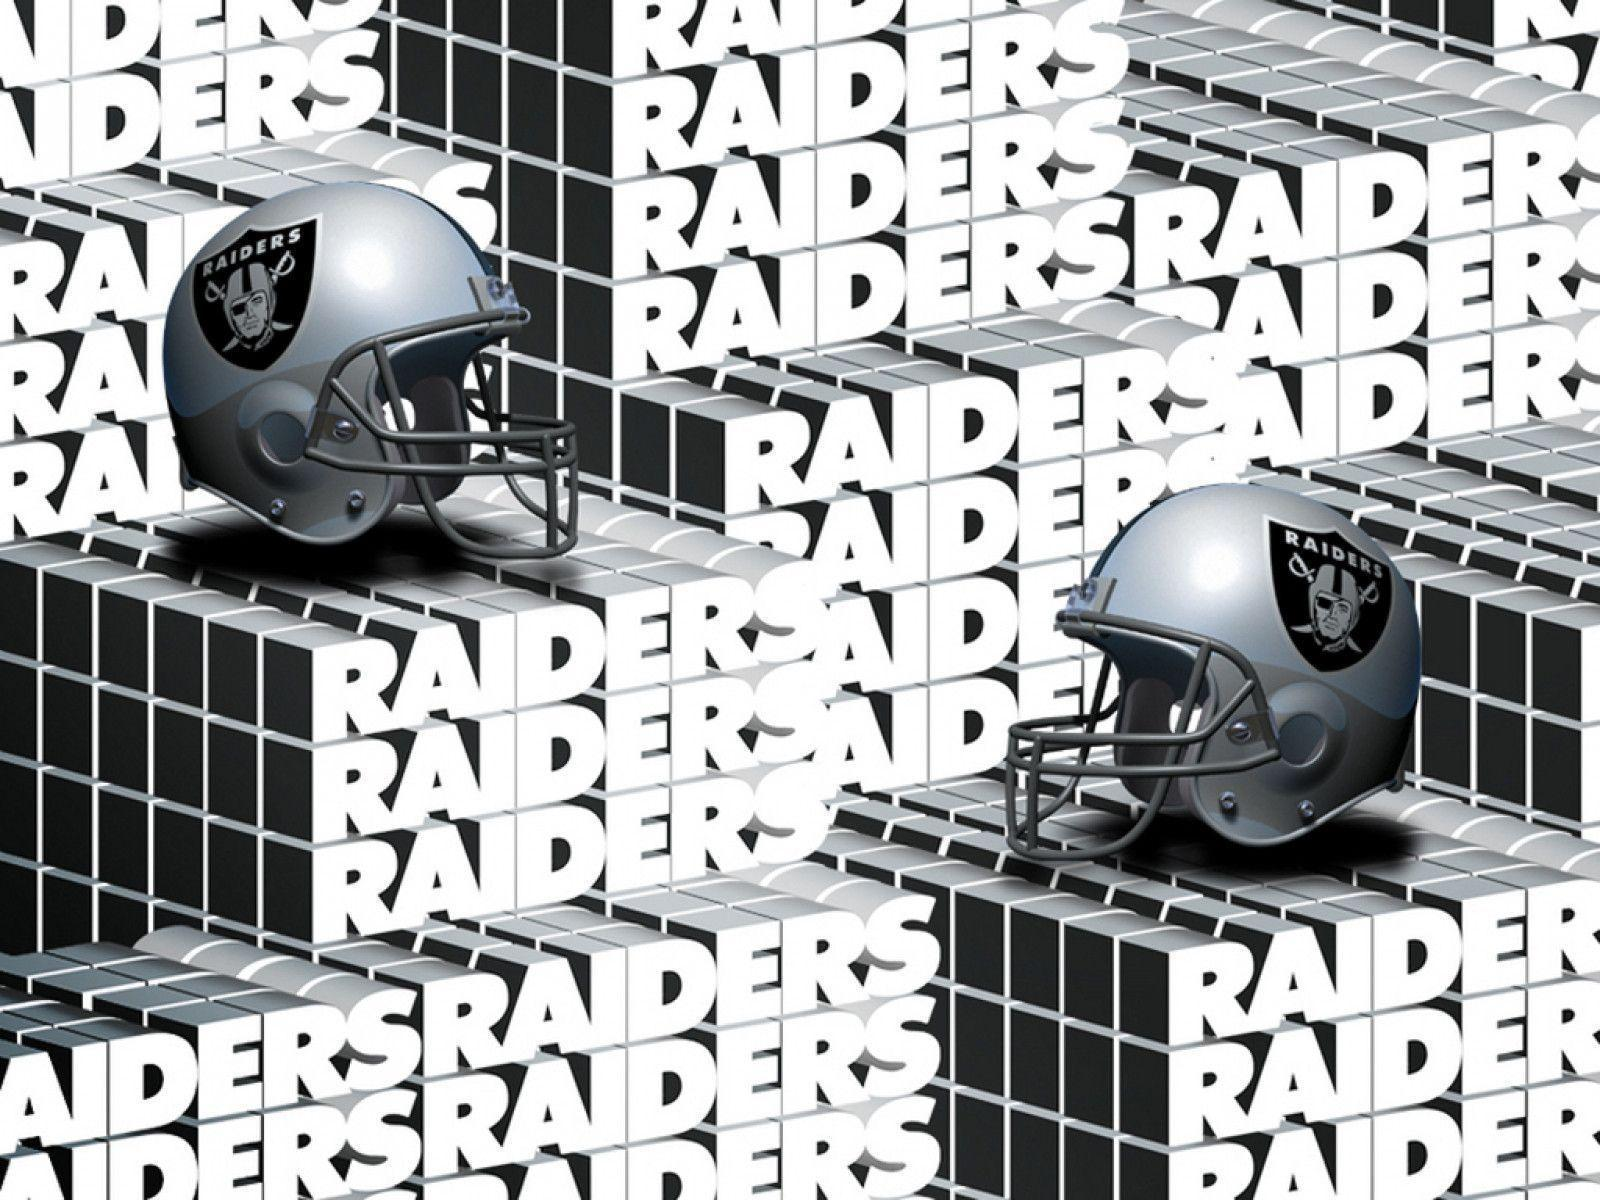 Image For > Oakland Raiders Helmet Wallpapers